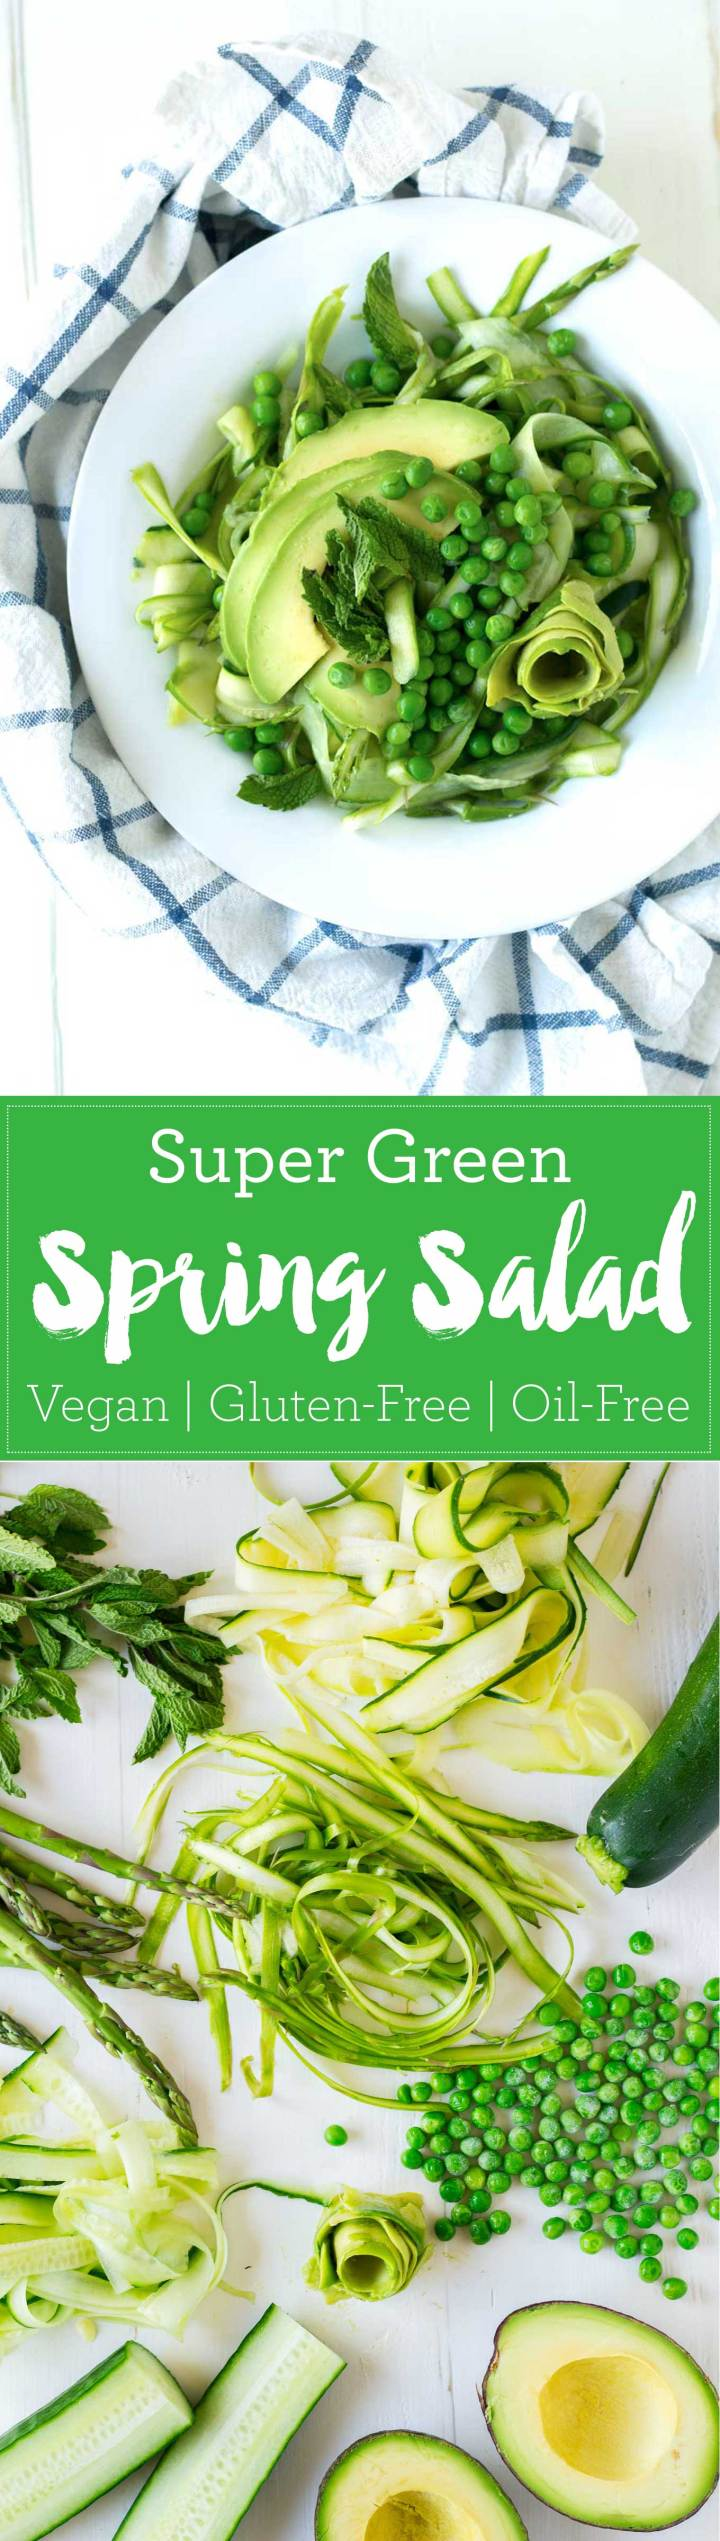 This super green spring salad is chock full of all of the green things of the season! Toss with a very simple 3-ingredient dressing and enjoy! Vegan, Gluten-Free, Oil-Free | https://passtheplants.com